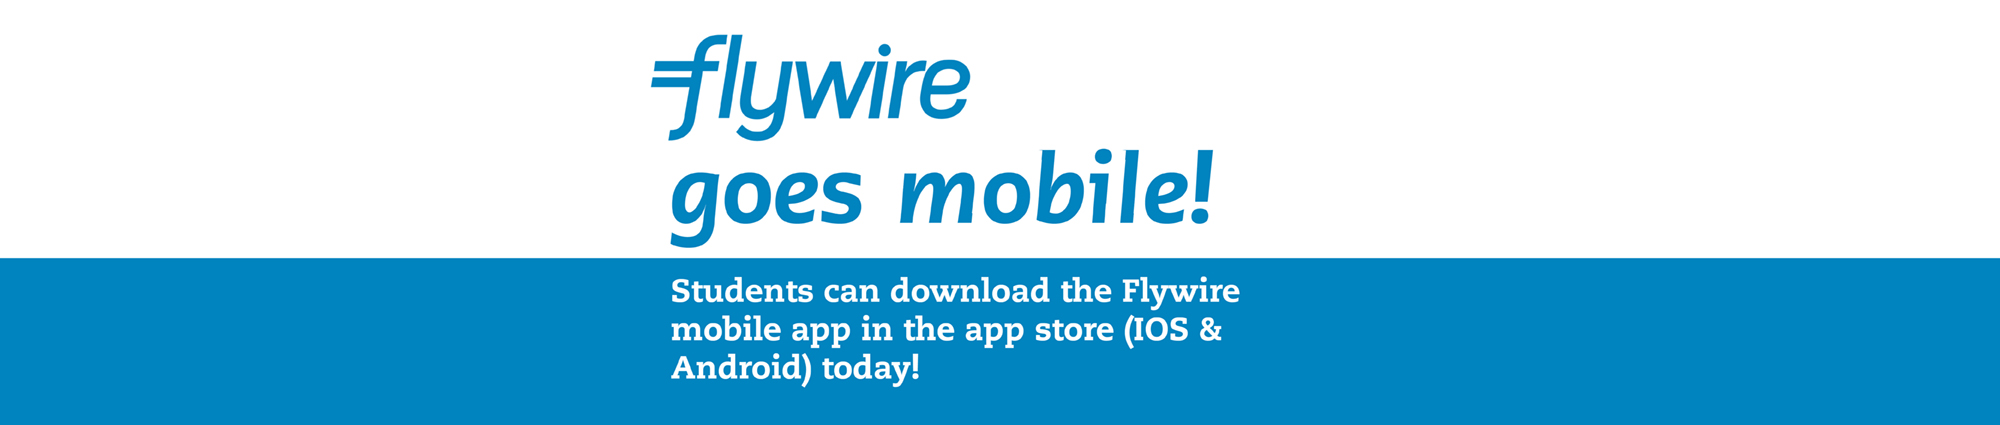 Flywire goes mobile! Students can download the Flywire mobile app in the app store (IOS & Android) today!